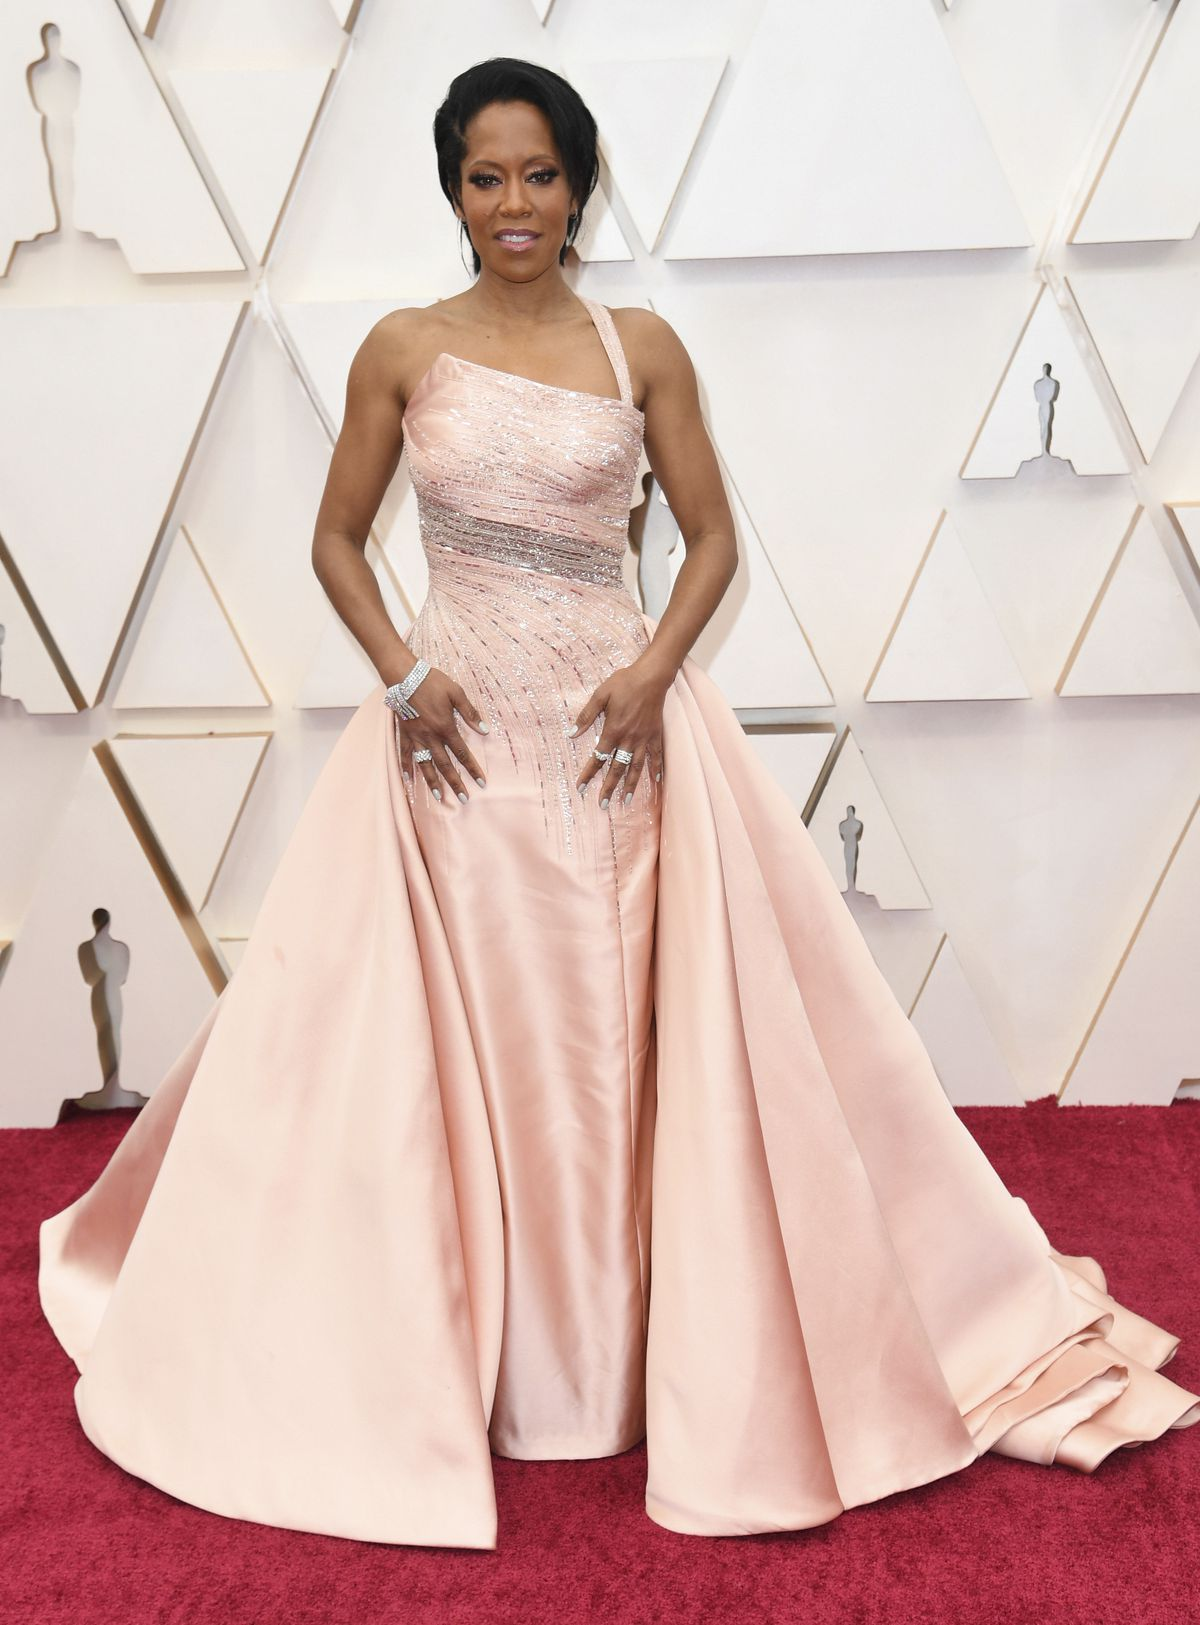 Regina King arrives at the Oscars on Sunday, Feb. 9, 2020, at the Dolby Theatre in Los Angeles.